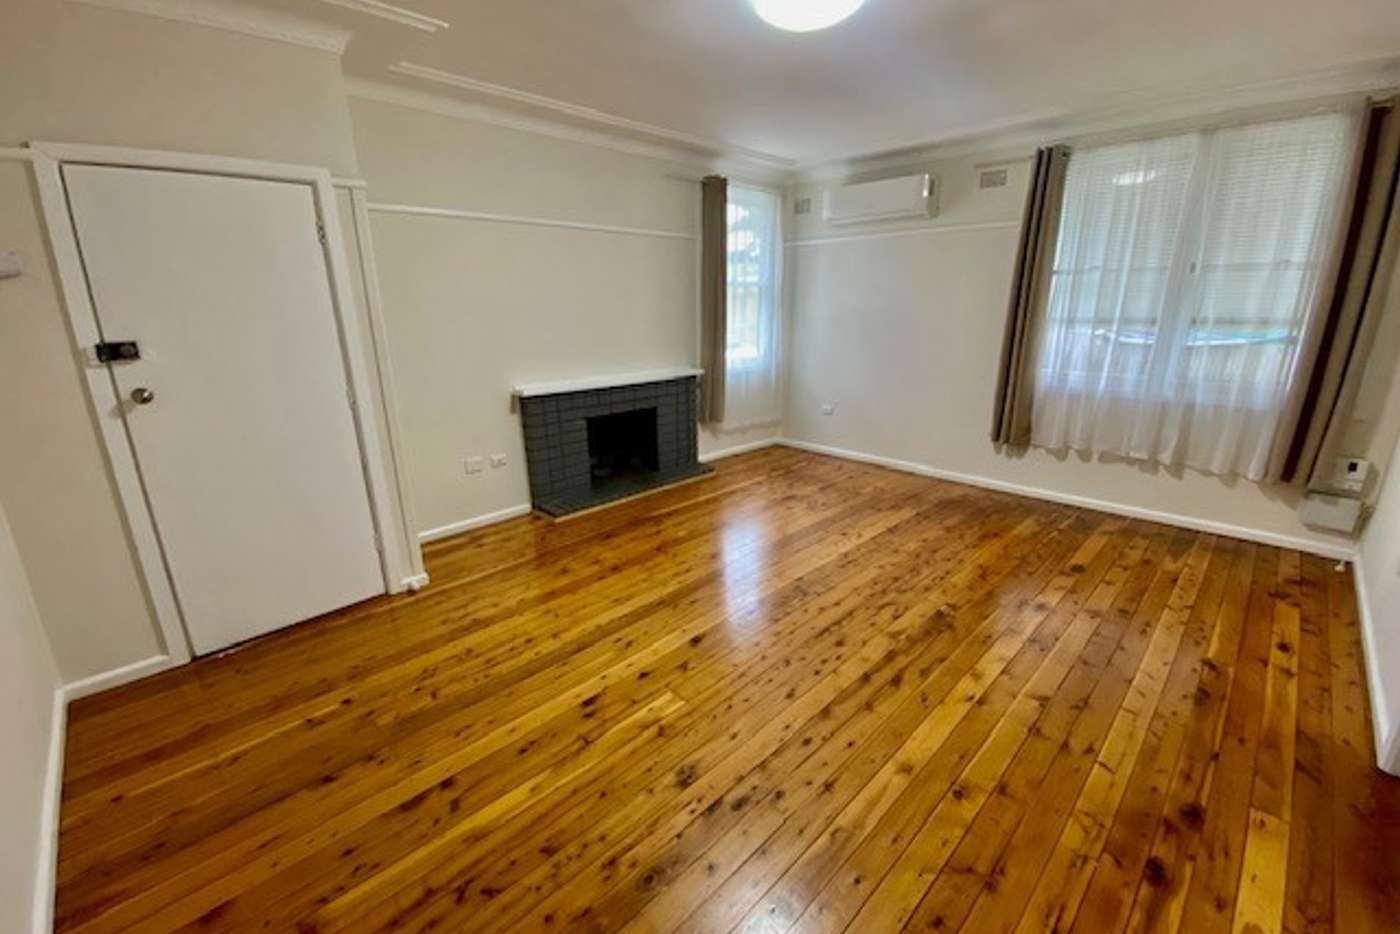 Main view of Homely house listing, 151 Lucas Road, Lalor Park NSW 2147